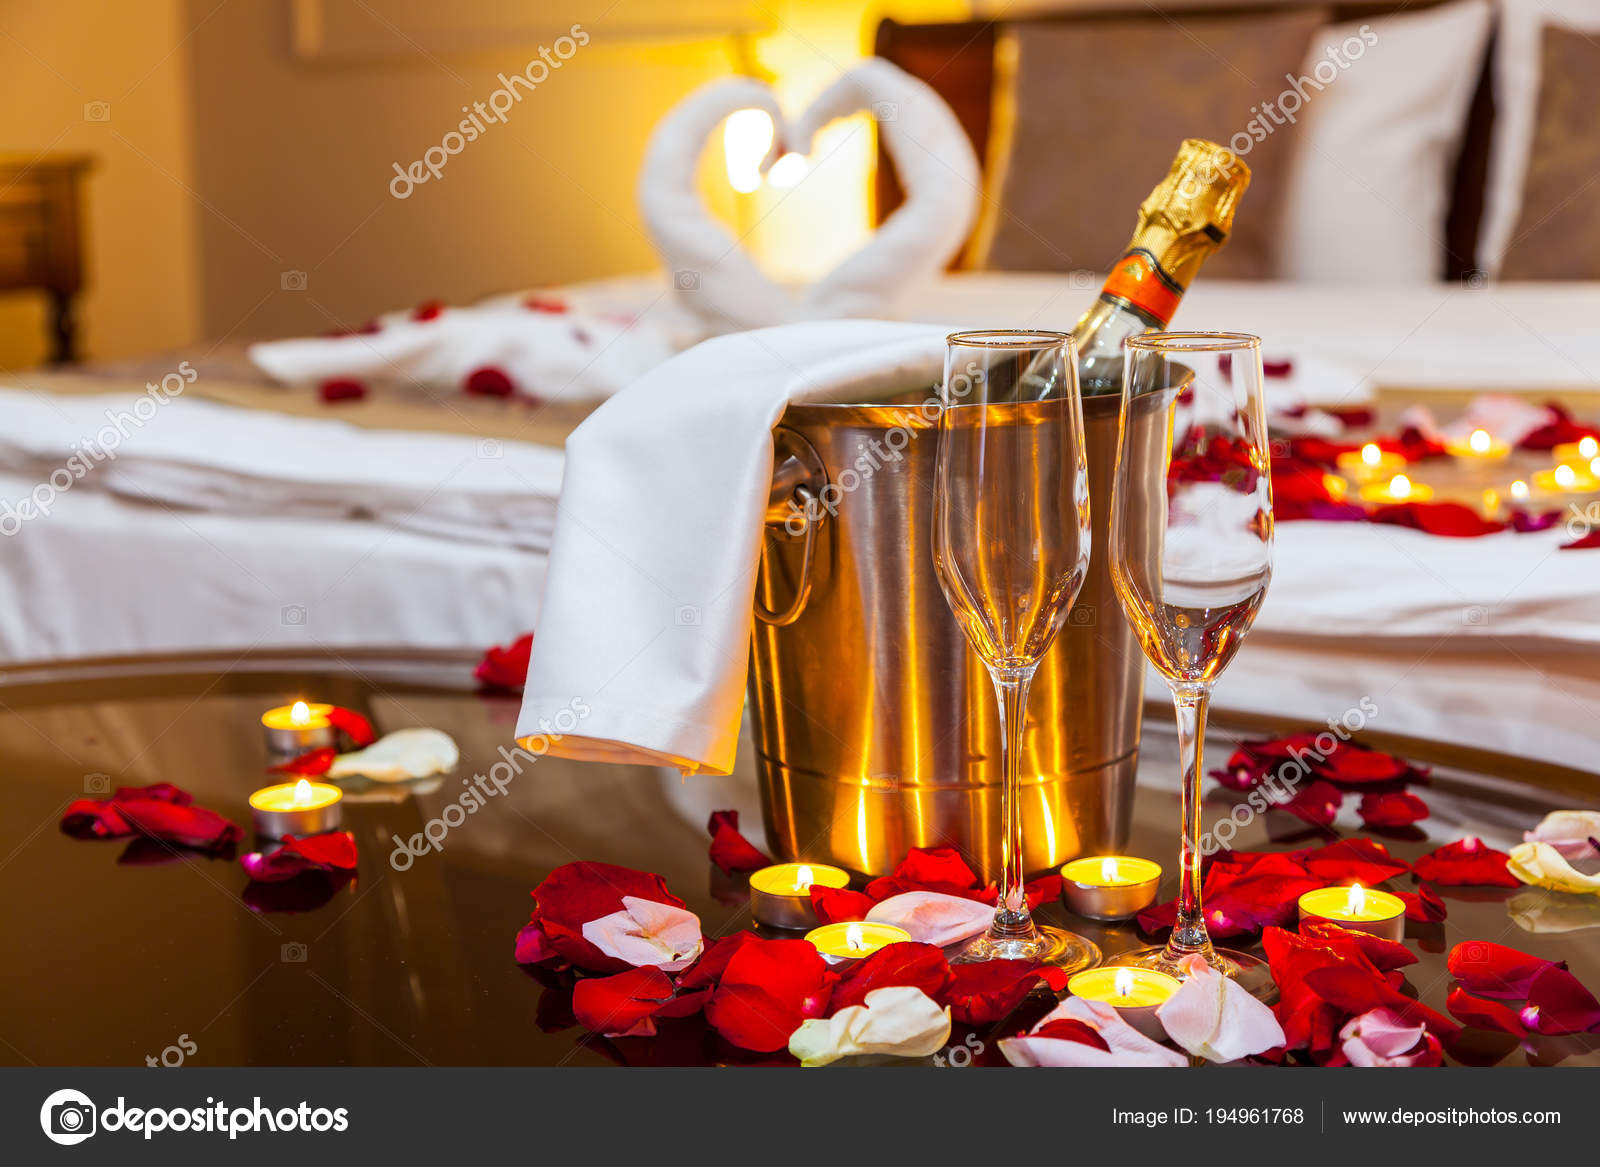 Hotel Room Honeymoon Table Fruit Plate Candles Background Bed Decorated Stock Photo